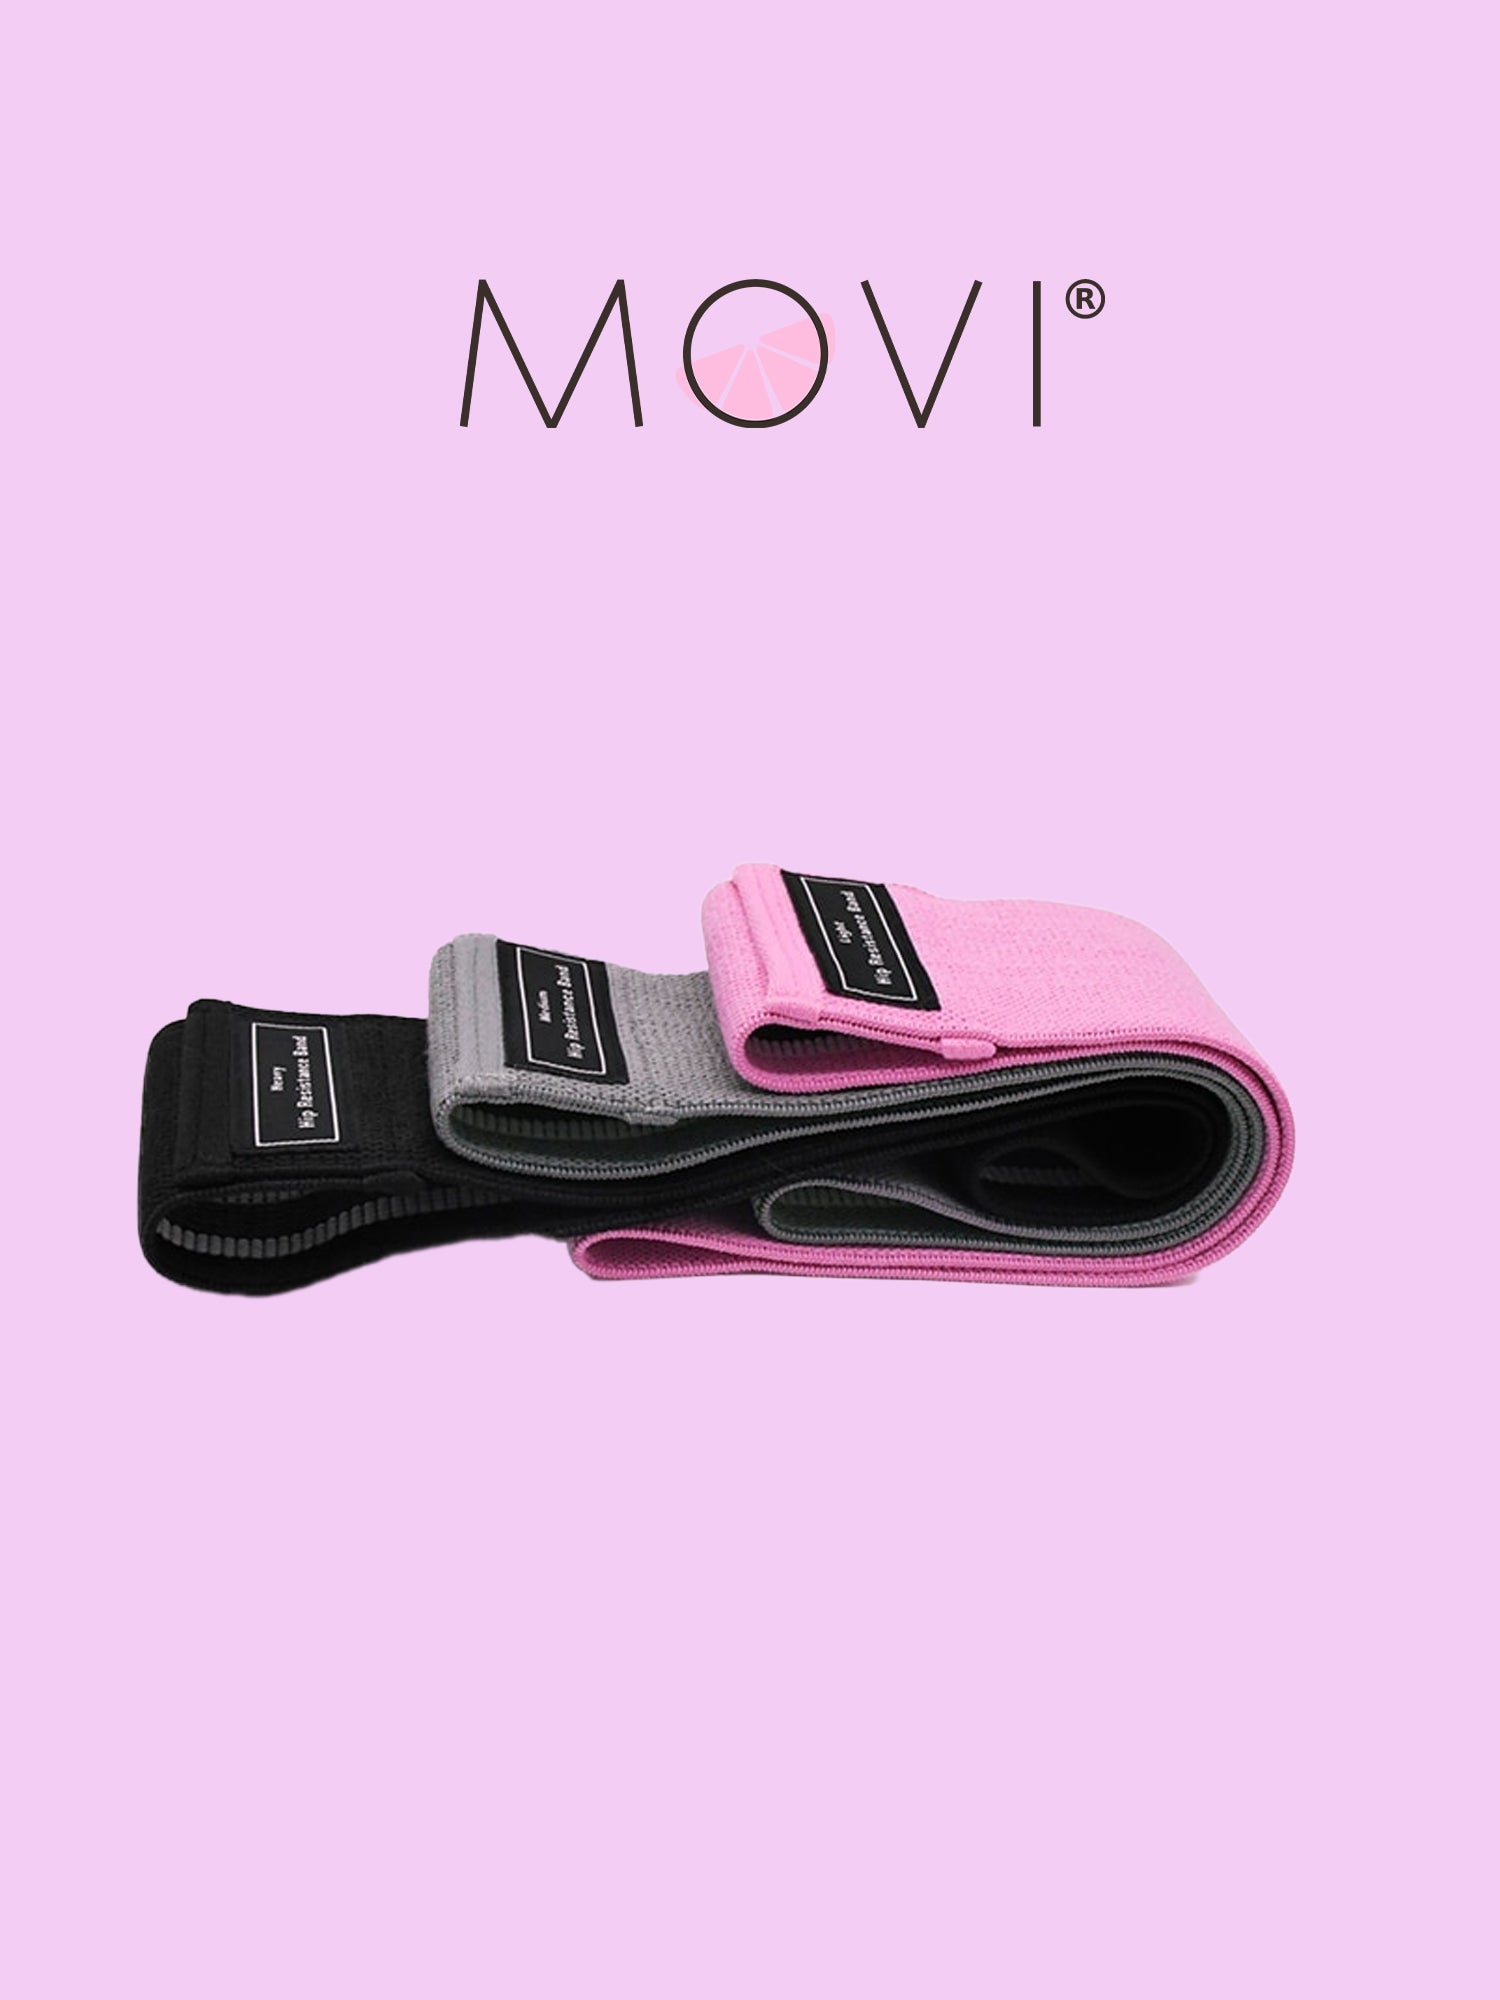 MOVI Resistance Band Set